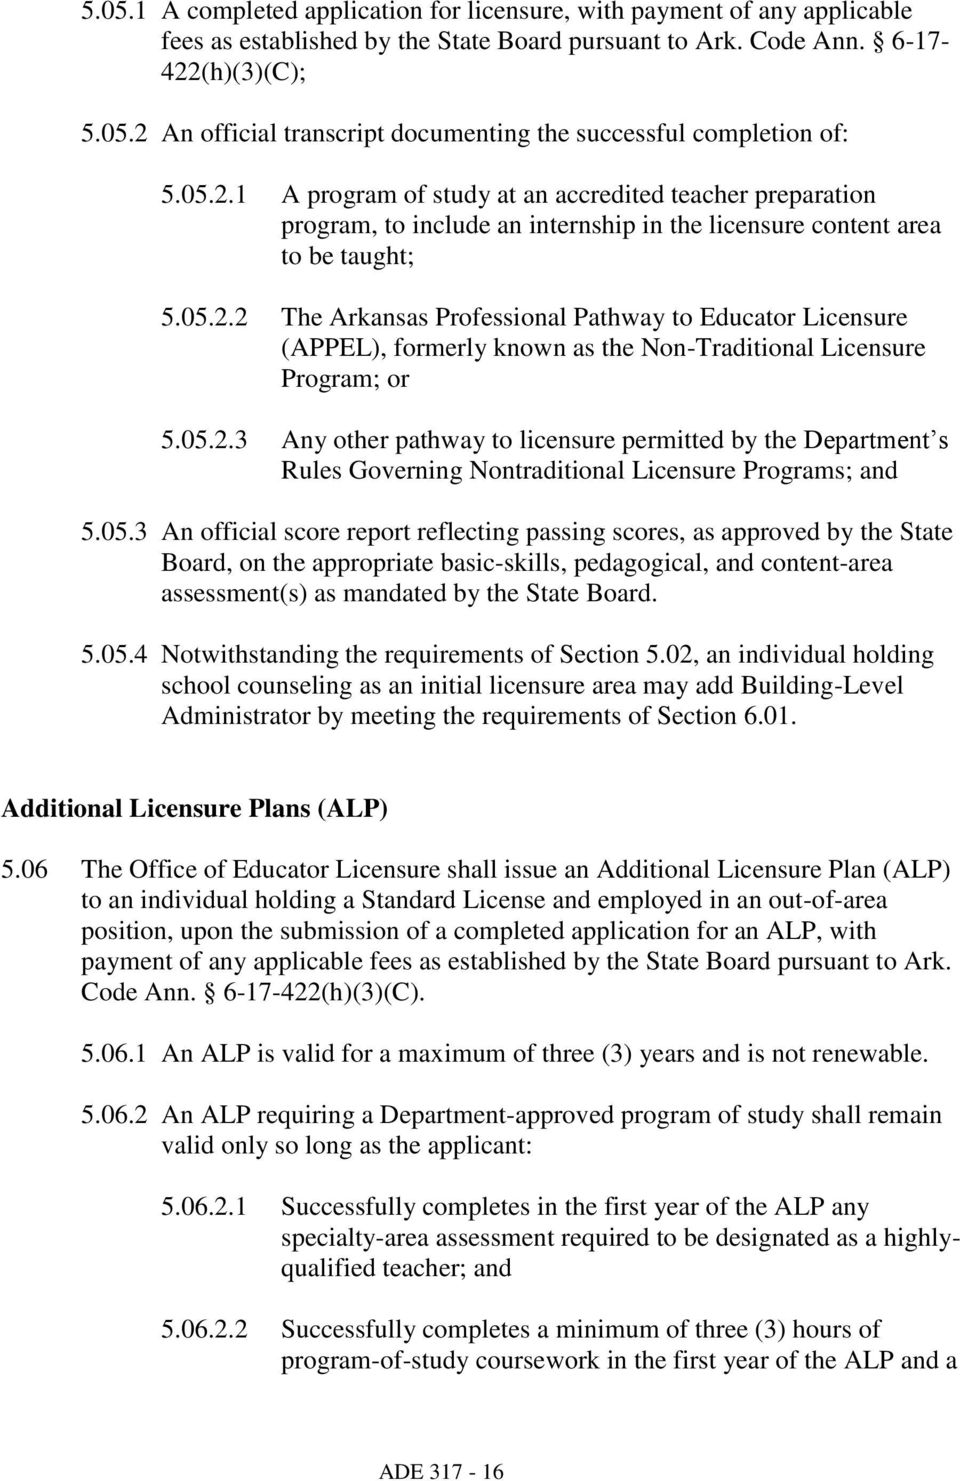 05.2.3 Any other pathway to licensure permitted by the Department s Rules Governing Nontraditional Licensure Programs; and 5.05.3 An official score report reflecting passing scores, as approved by the State Board, on the appropriate basic-skills, pedagogical, and content-area assessment(s) as mandated by the State Board.